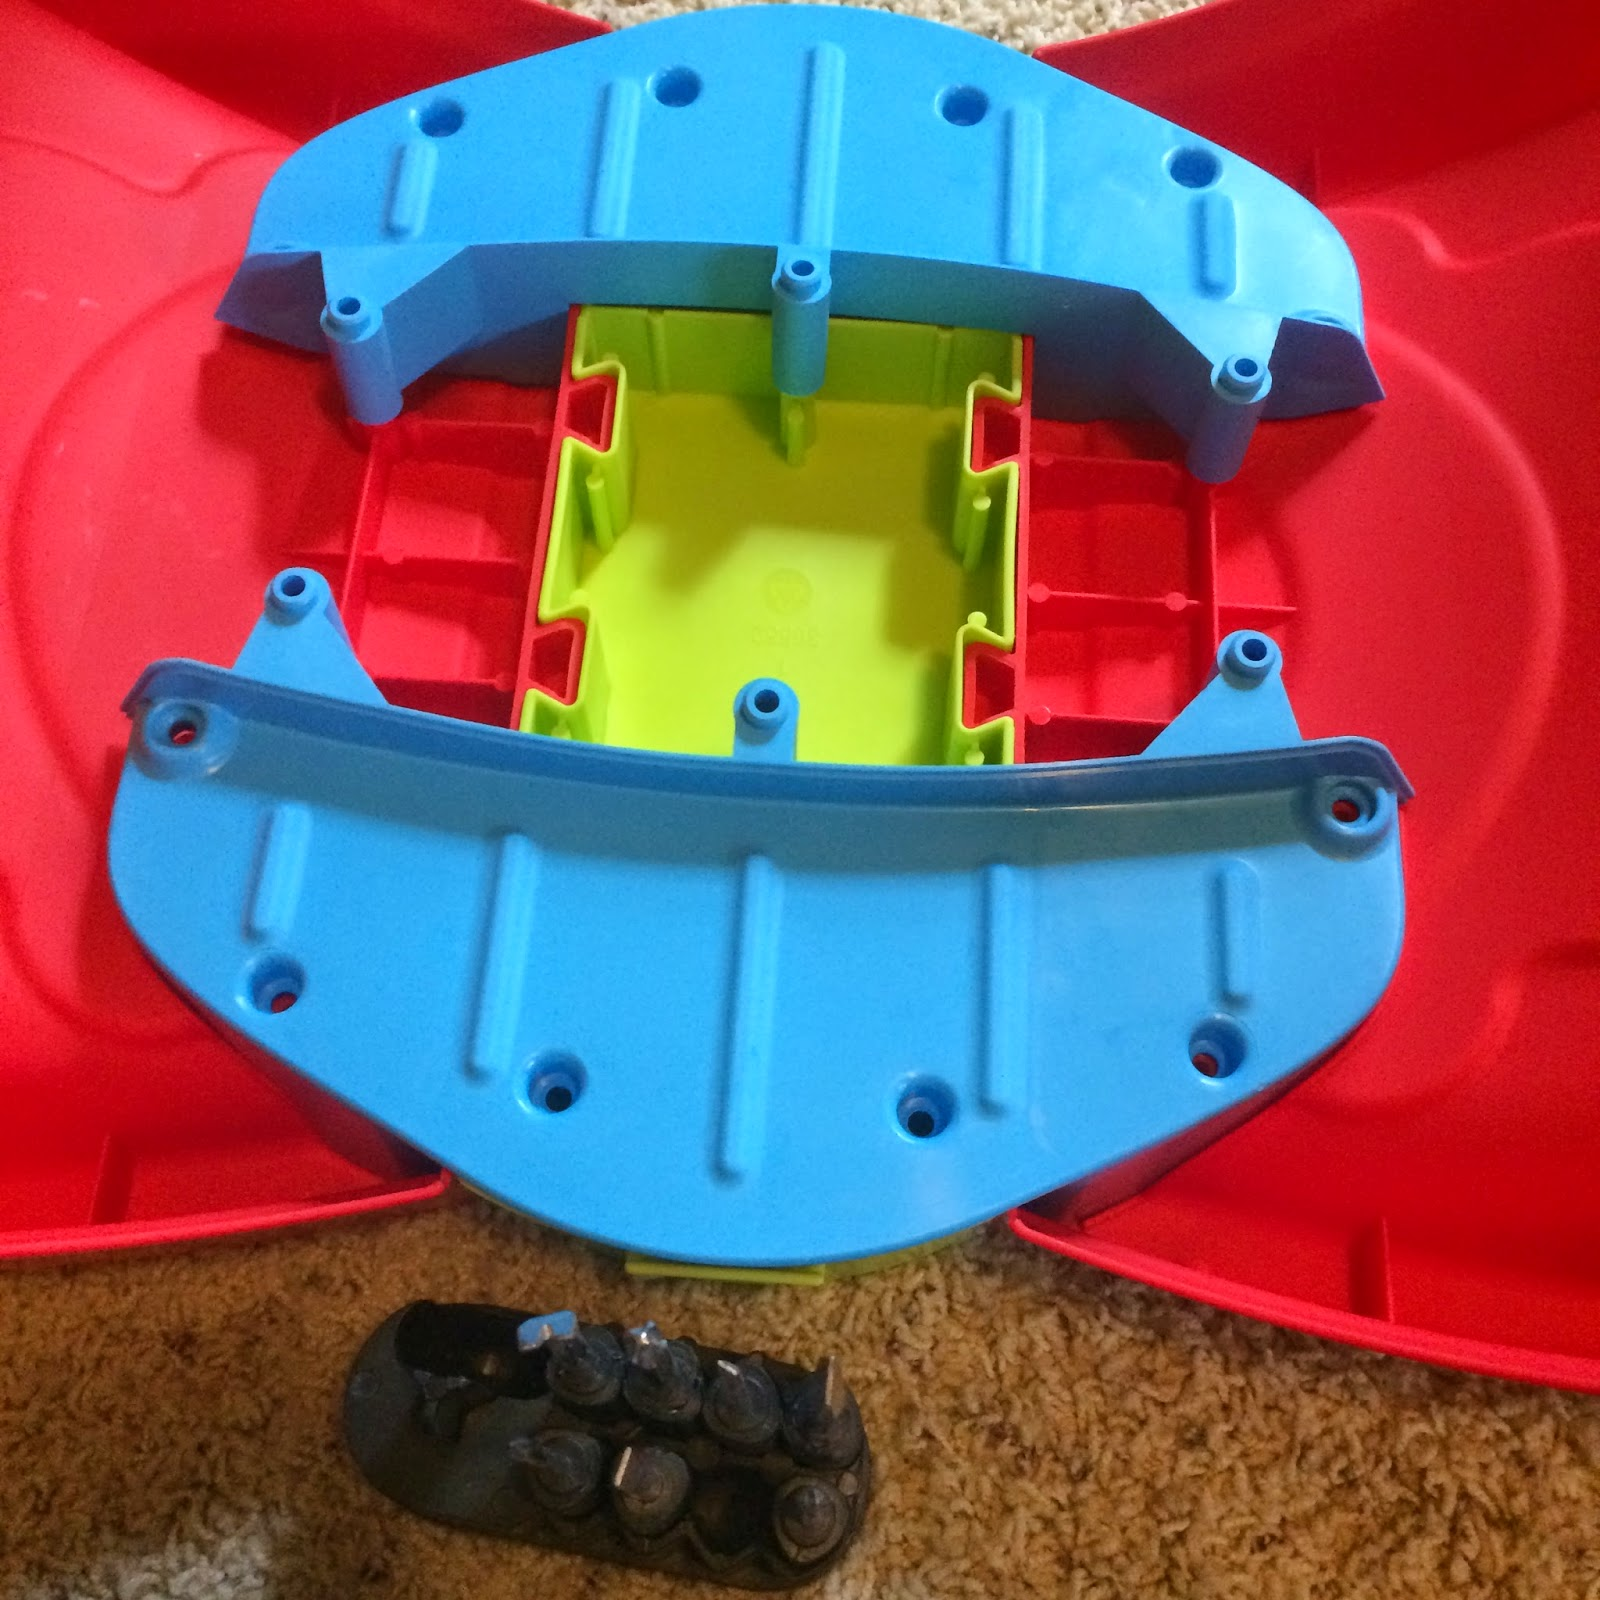 almost finished with build #TeamLittleTikes